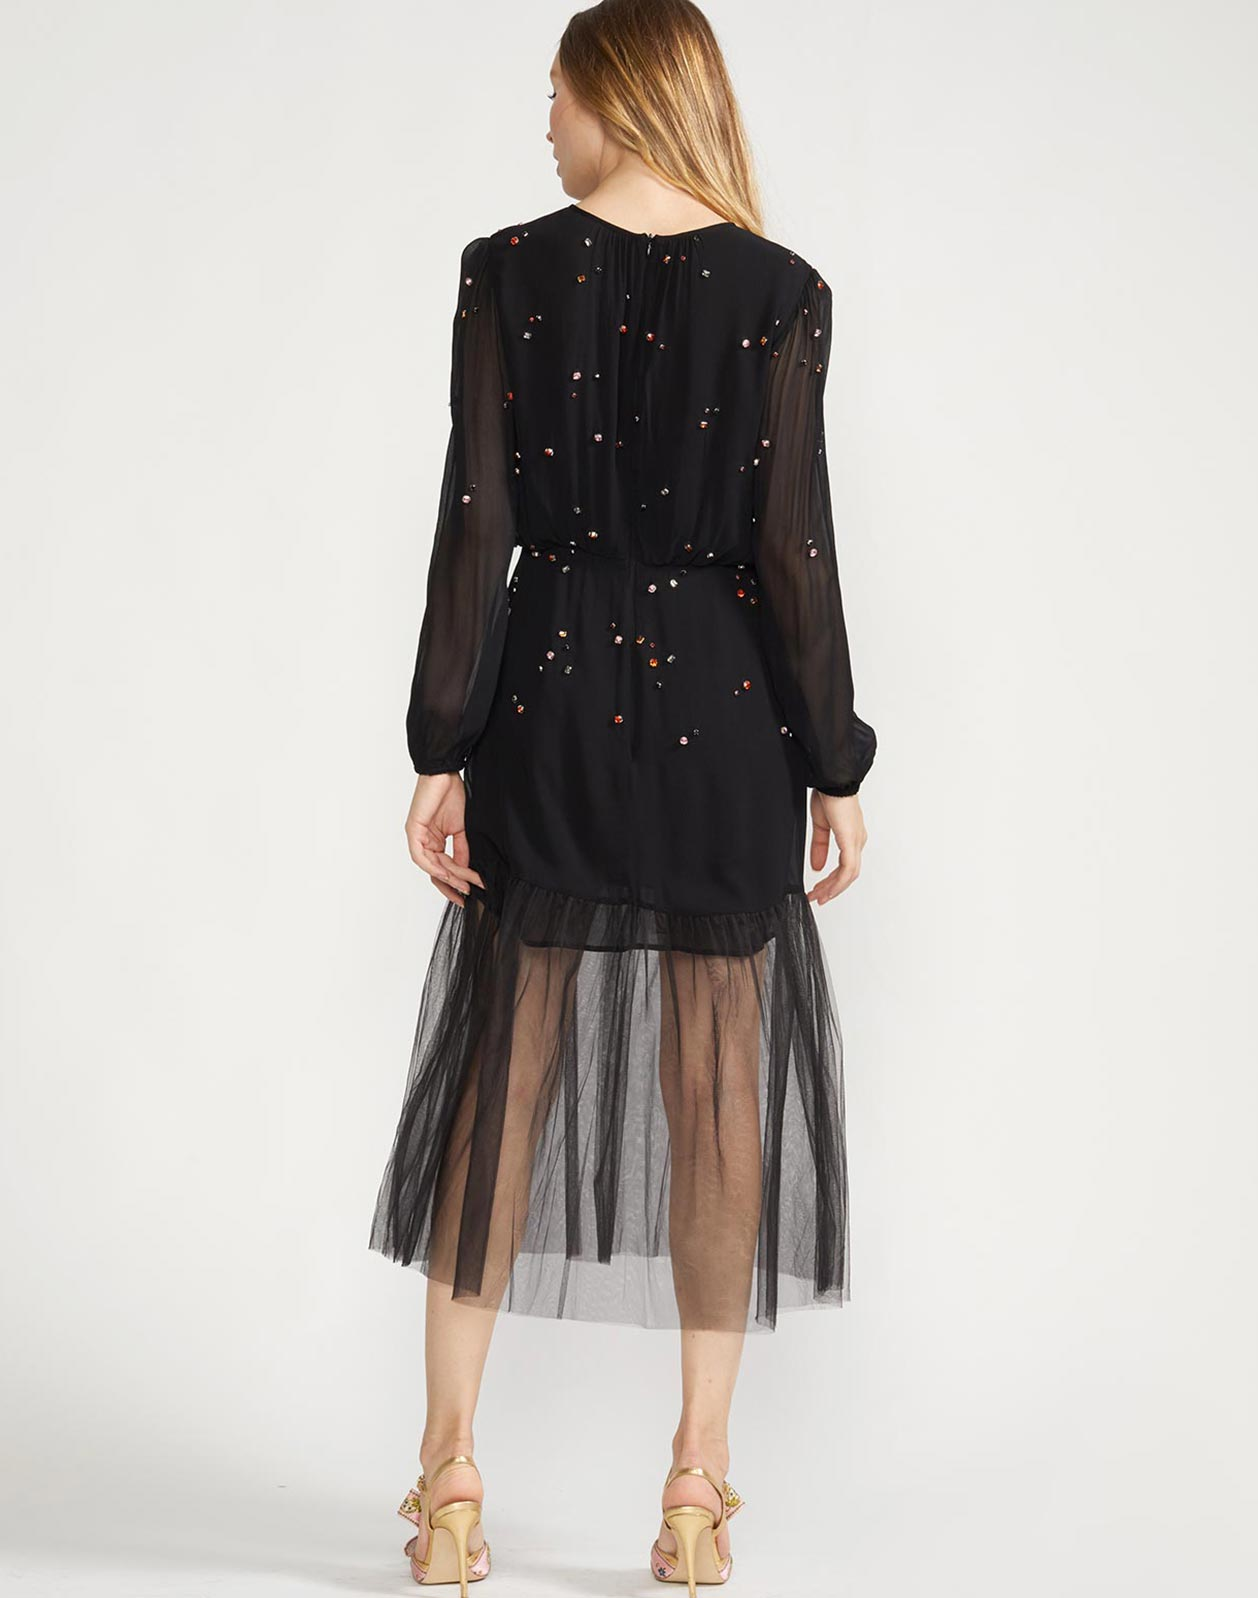 Back view of the Rhinestone embellished dress with sheer accents